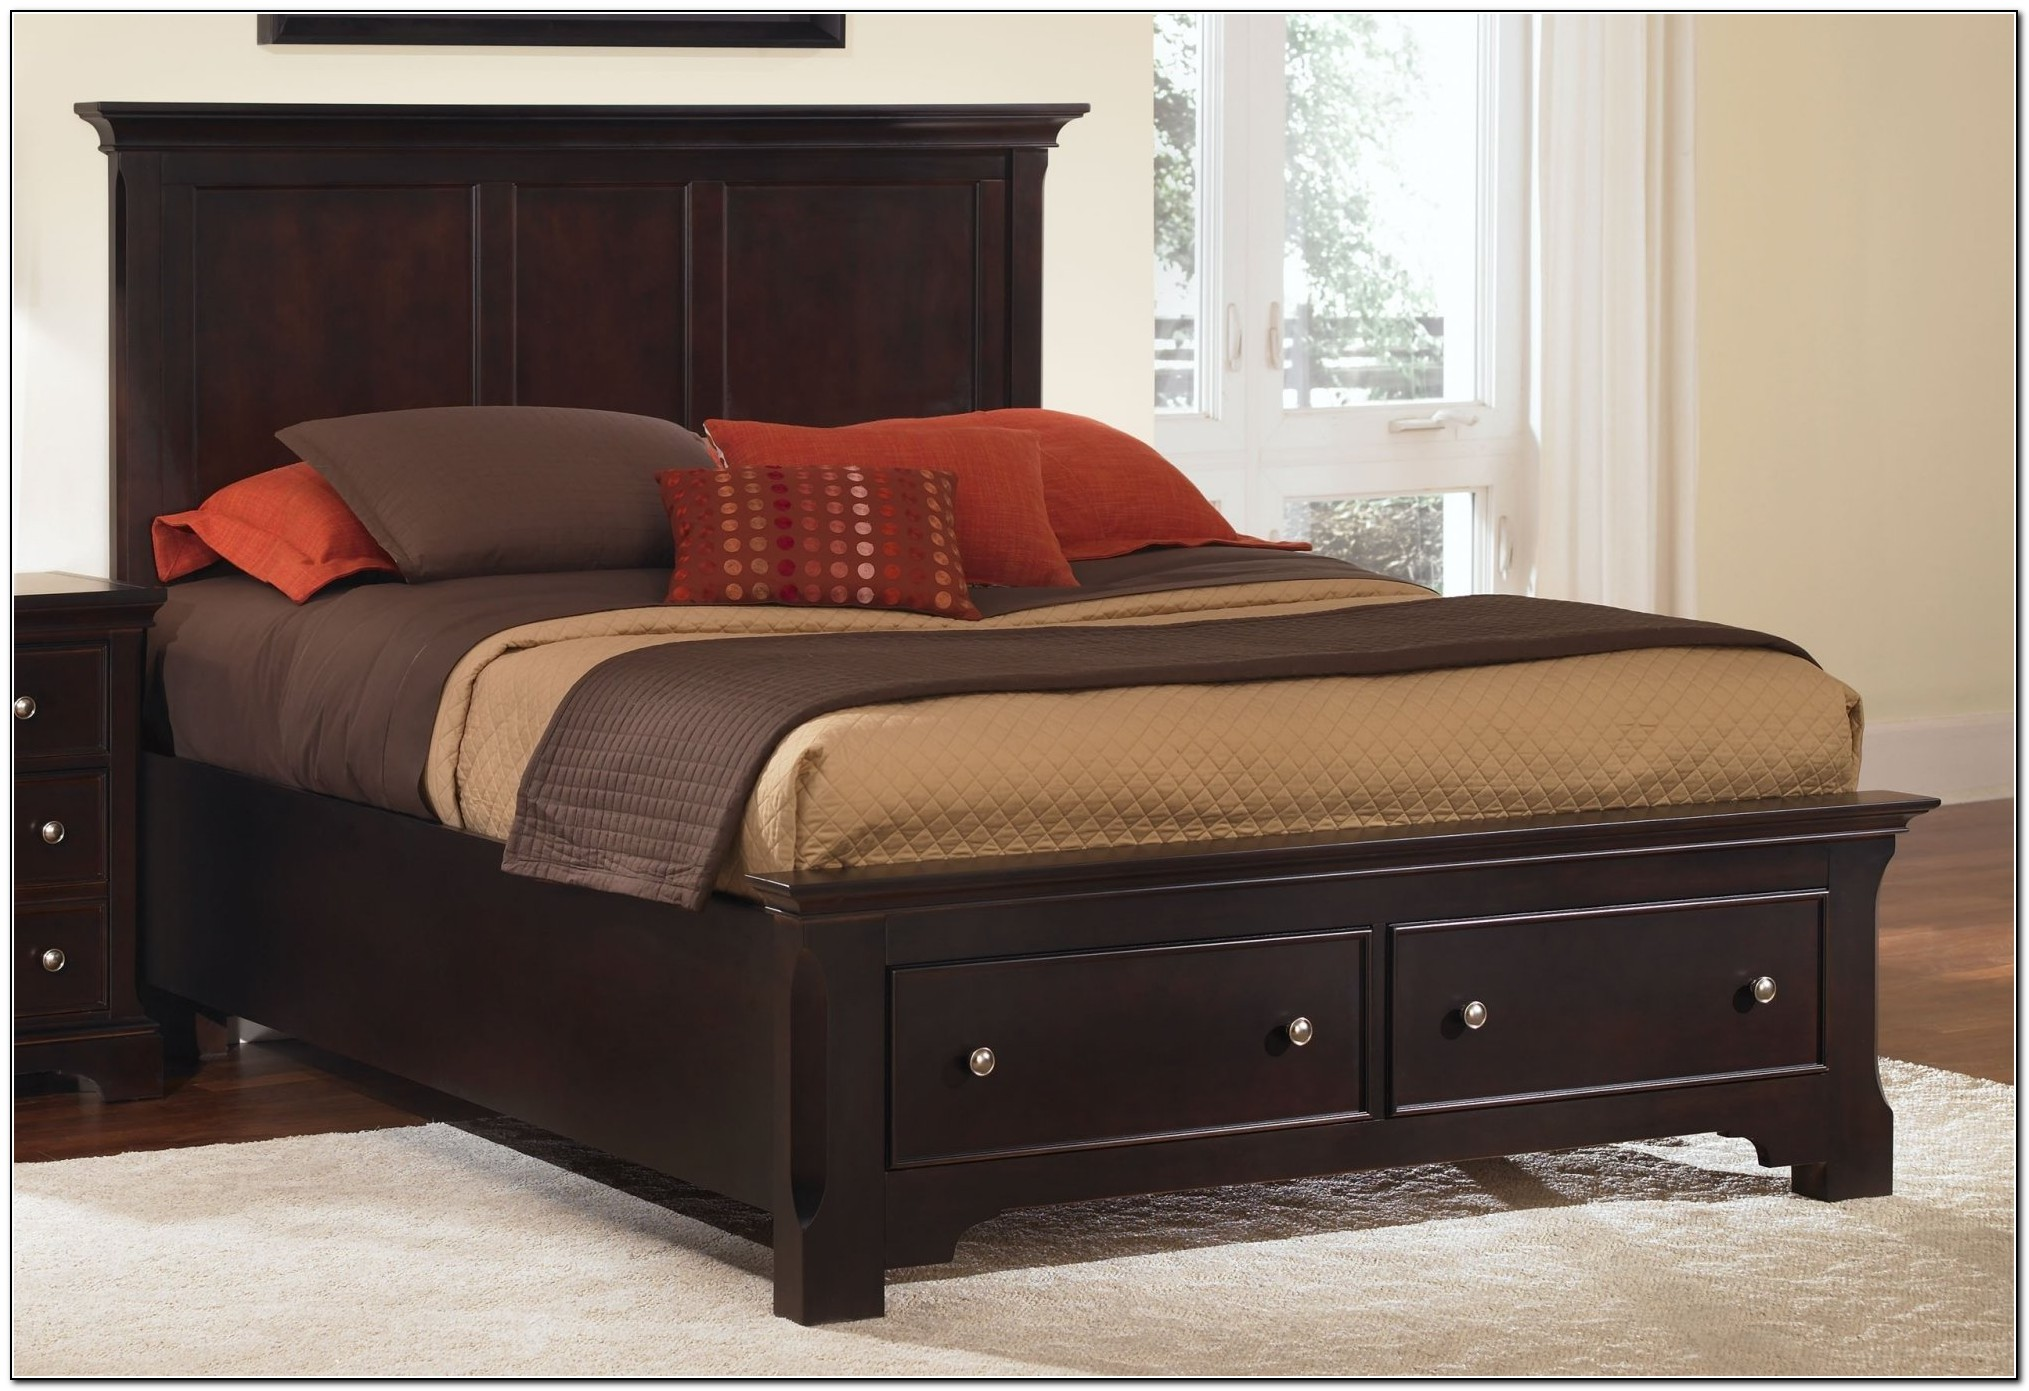 King Storage Bed Plans